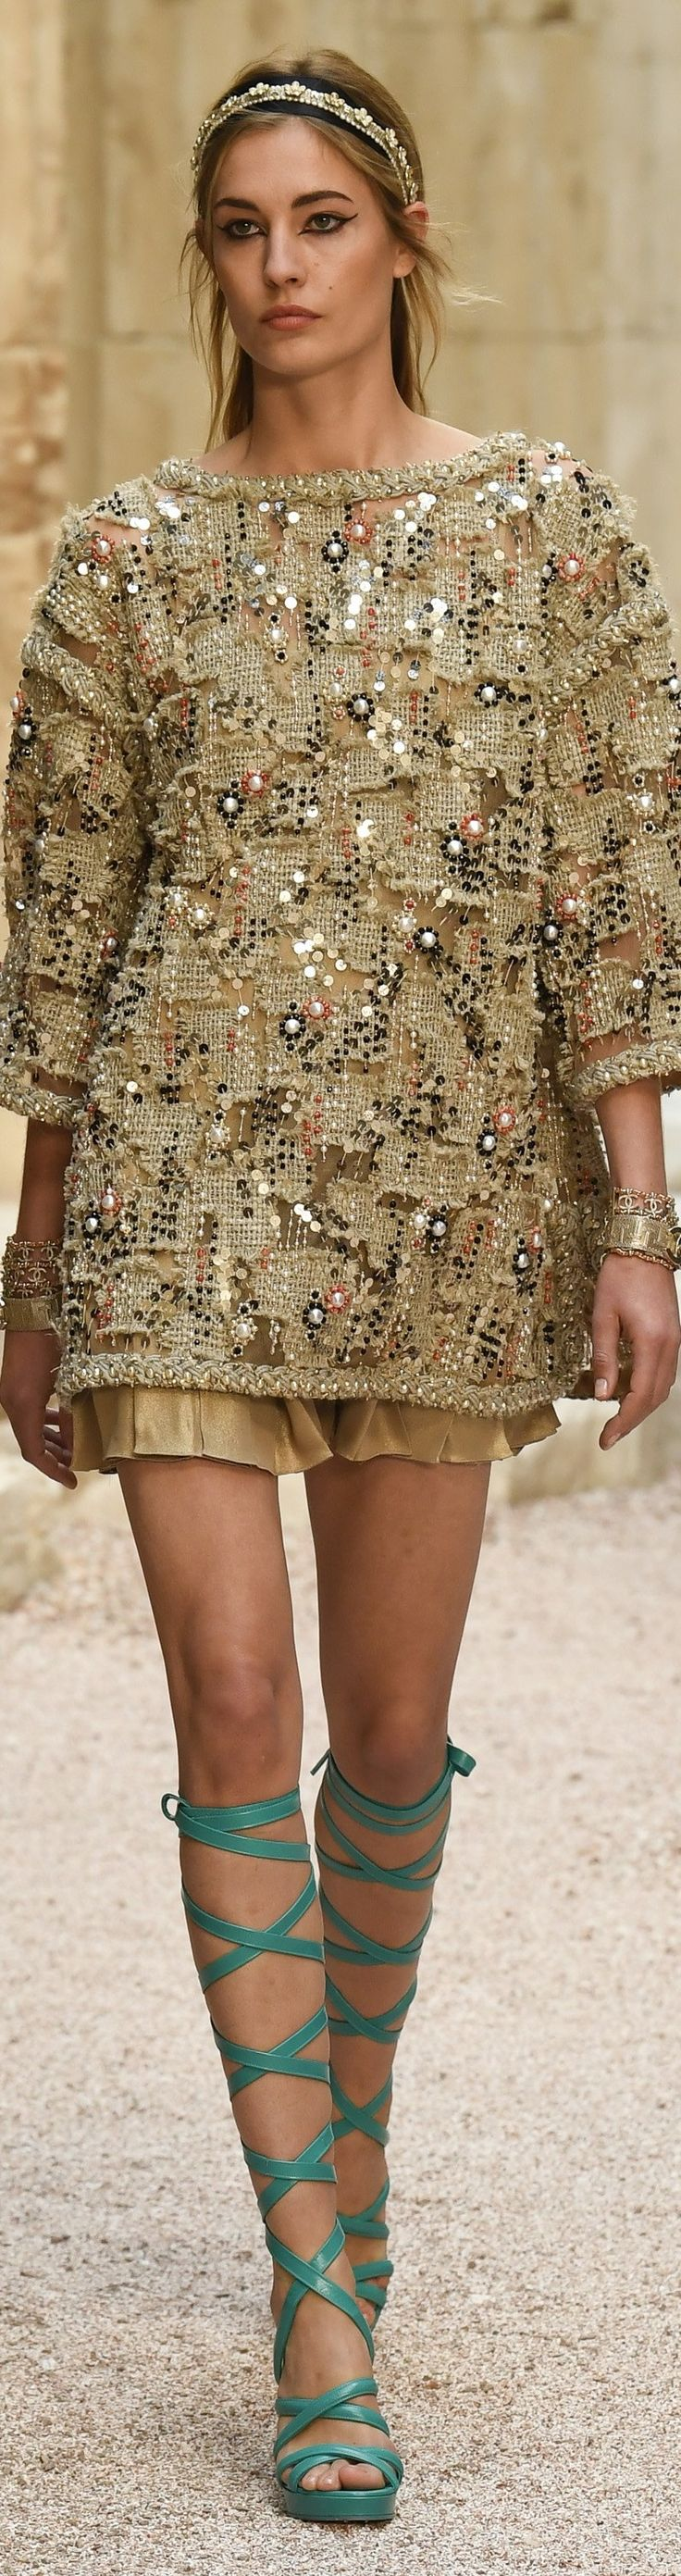 "Chanel Cruise 2018 at the Grand Palais in Paris, ""The Modernity of Antiquity"" inspired by Greece. vogue.com"